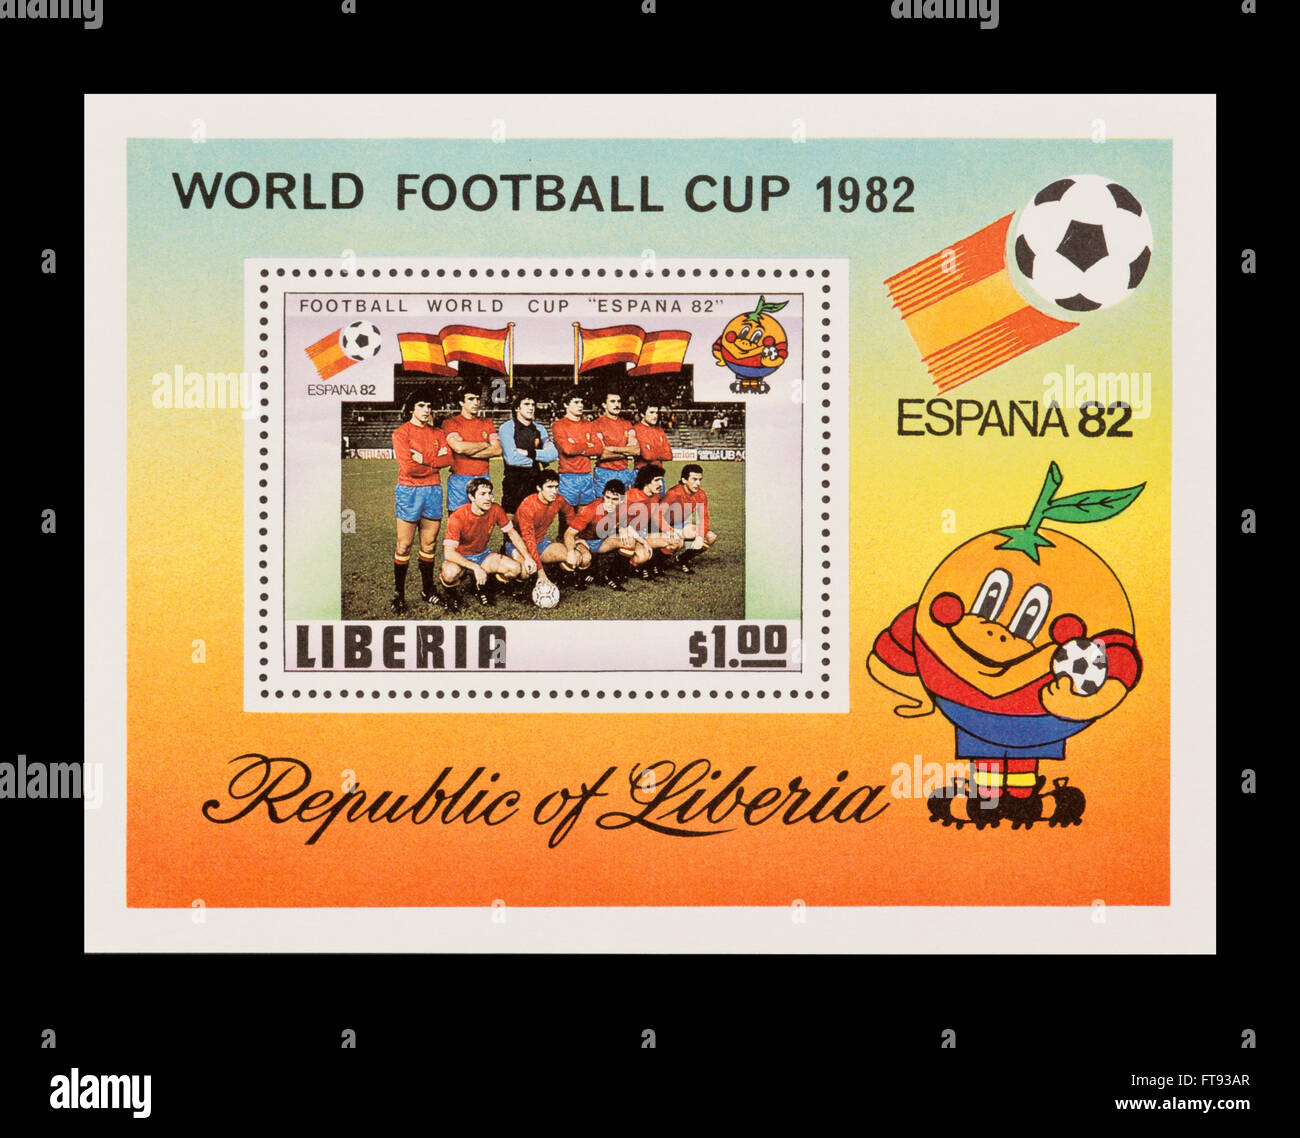 Souvenir sheet from Liberia depicting the Liberian National FOotball team, 1982 World Cup in Spain. - Stock Image